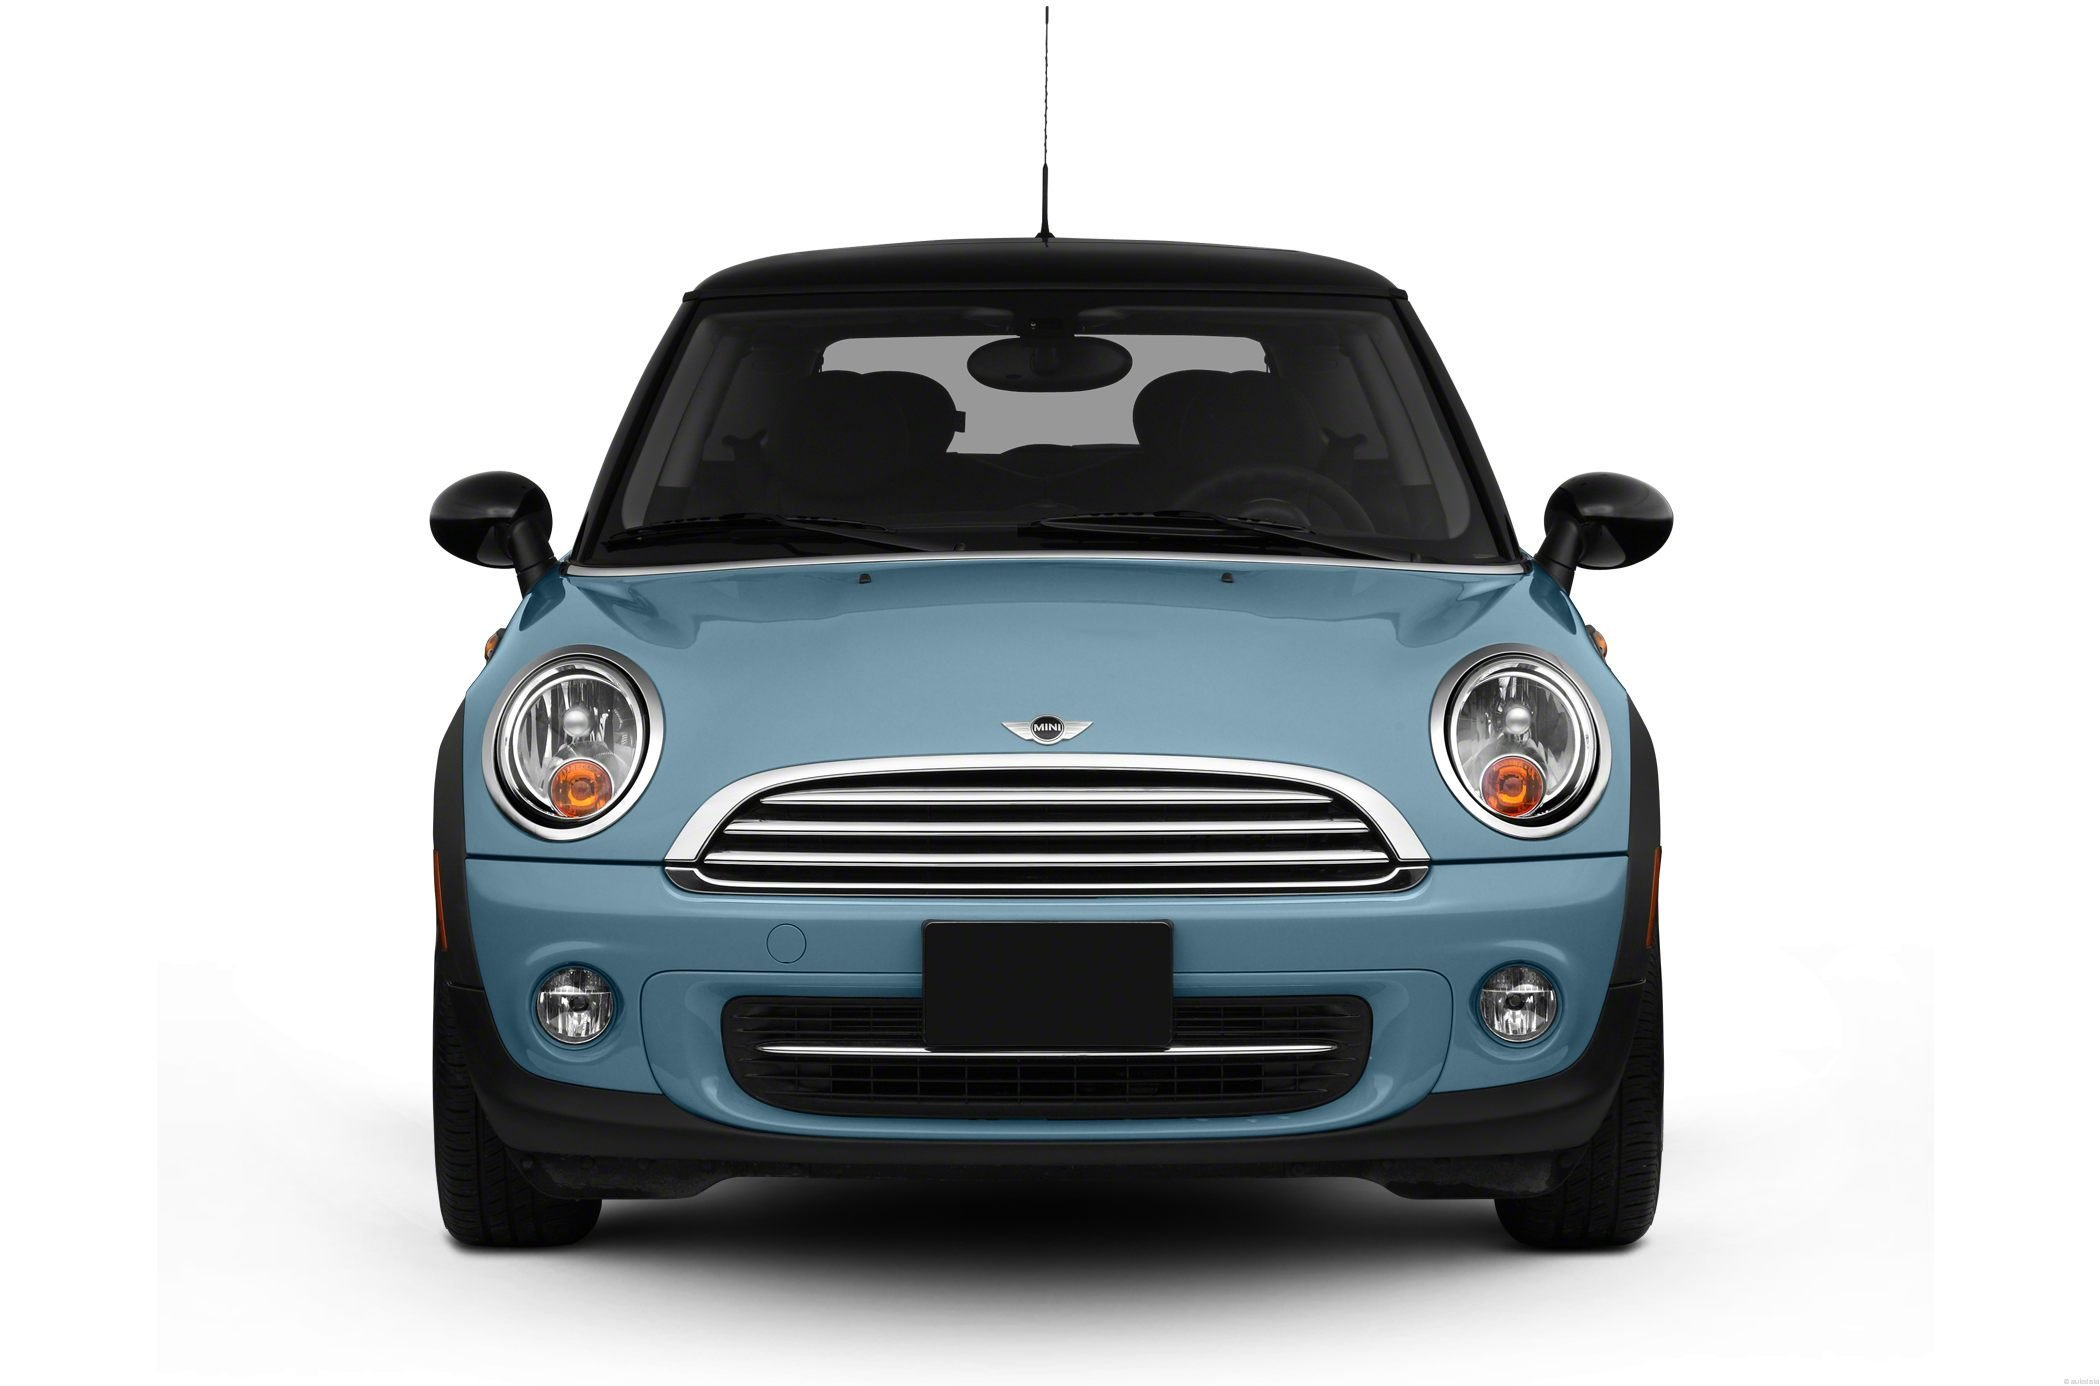 Latest 2012 Mini Cooper Price Photos Reviews Features Free Download